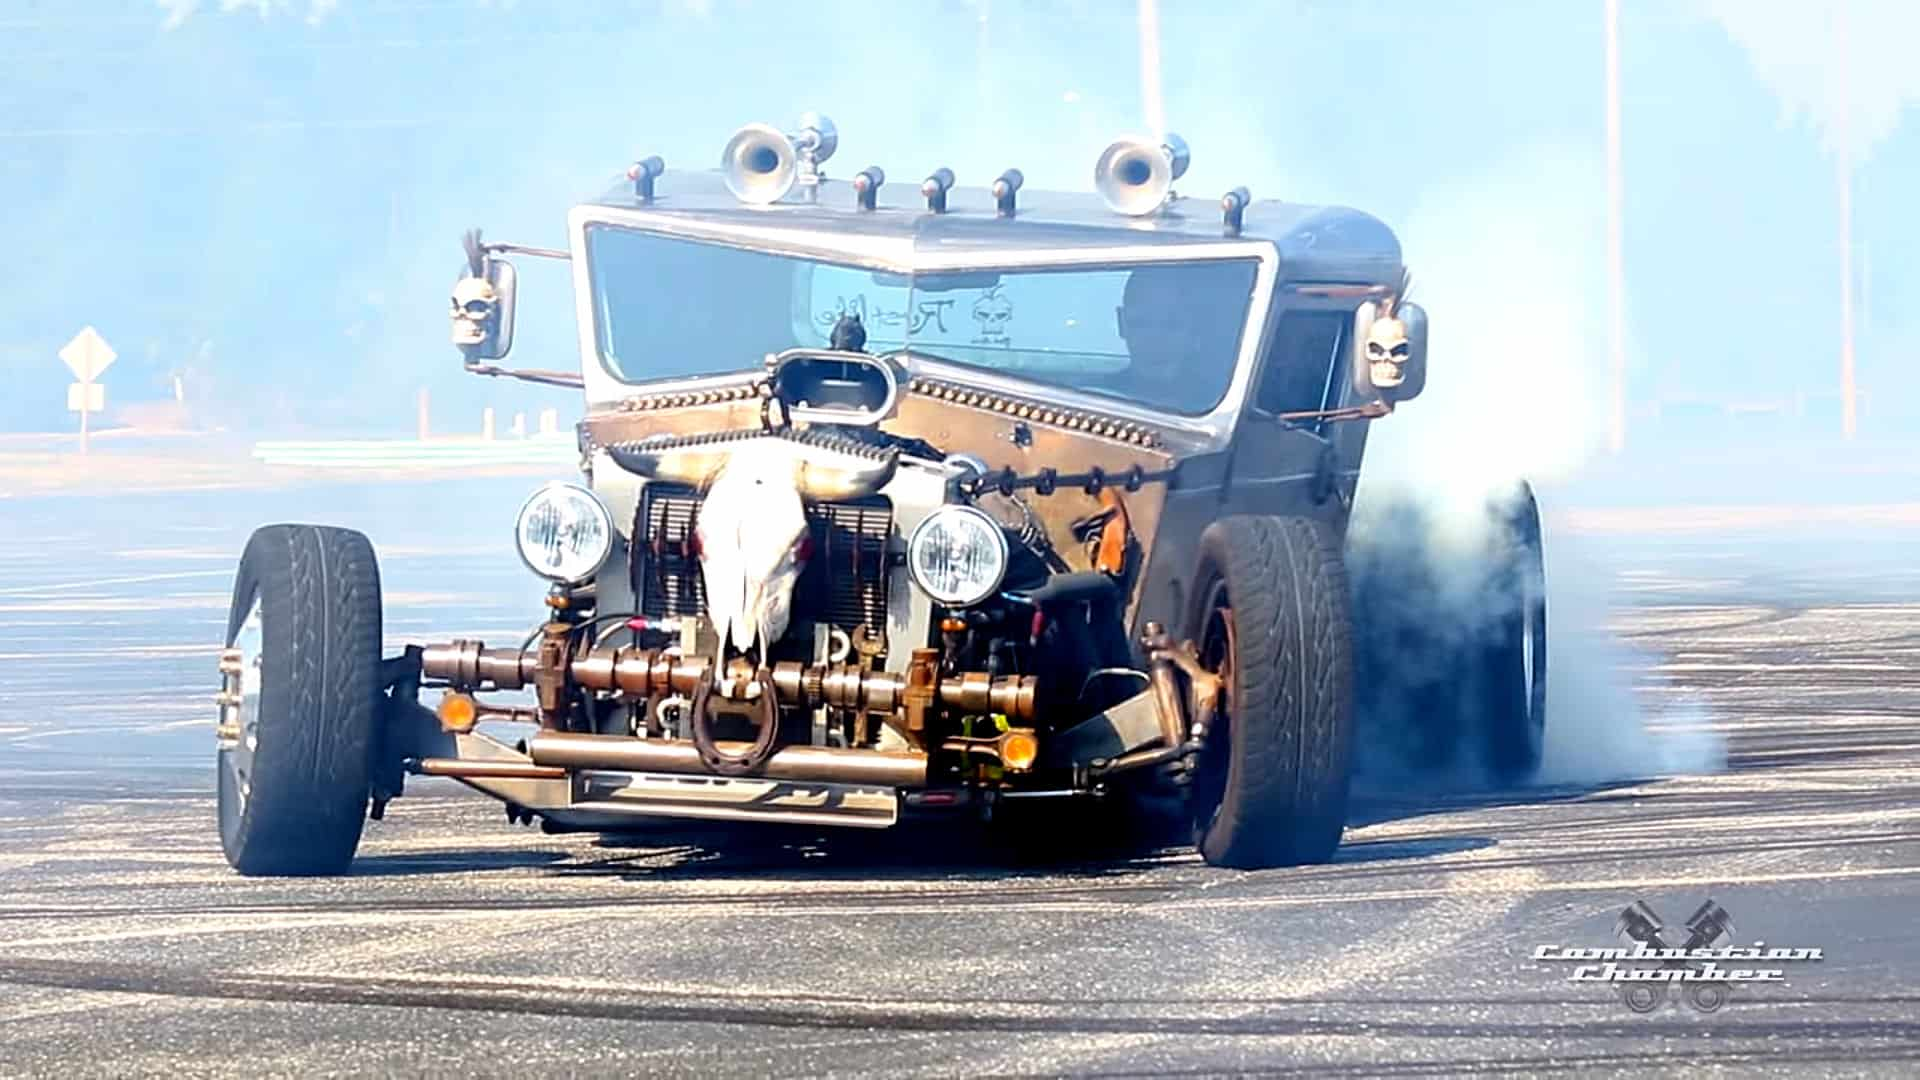 Ratical A Completely Hand Built Dually Rat Rod Truck